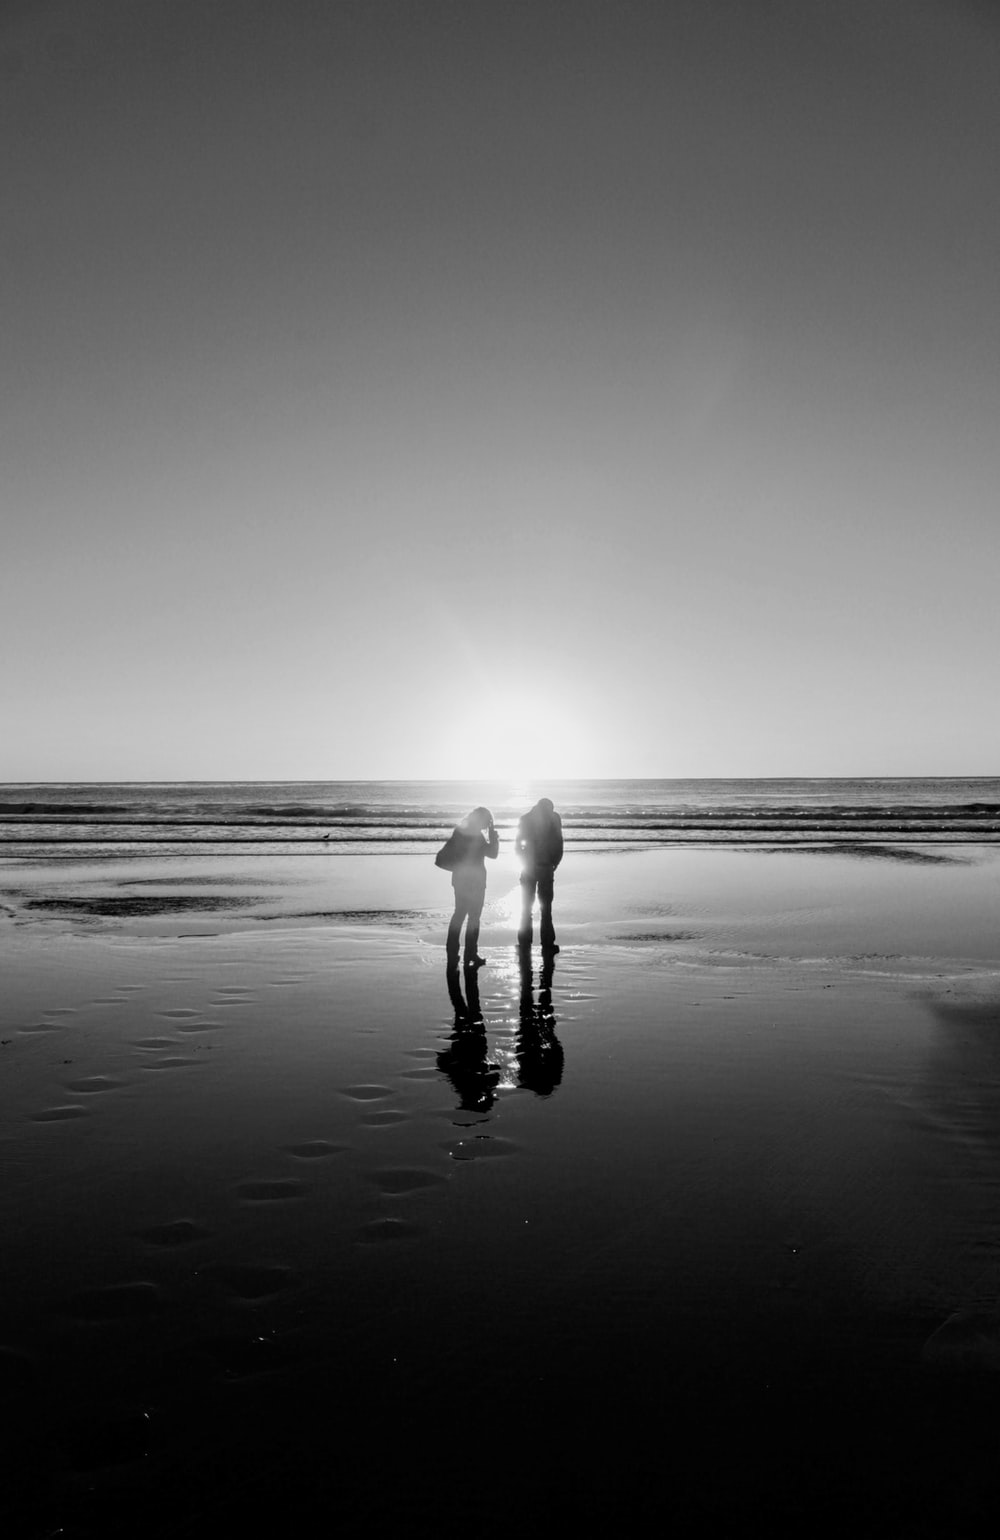 two people standing on seashore during day